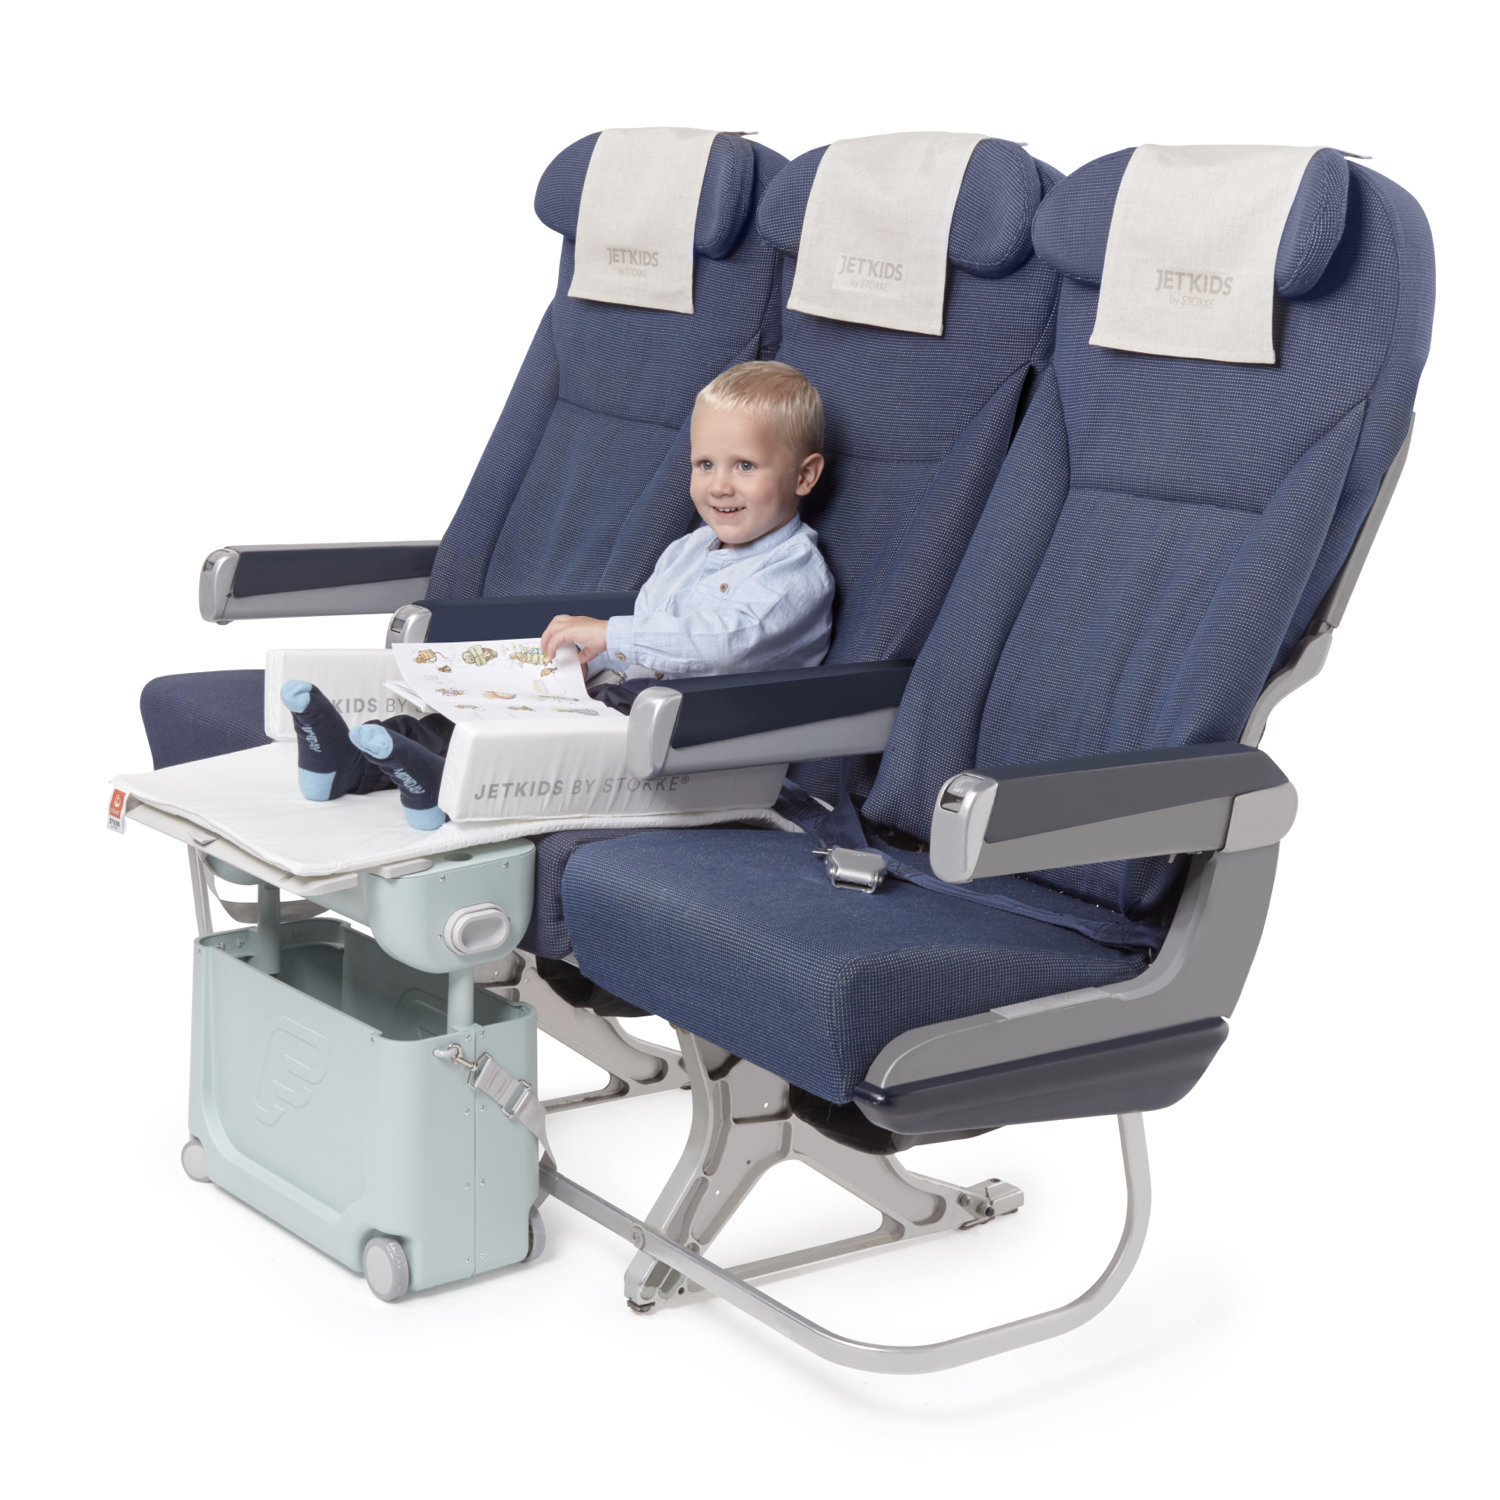 Jetkids By Stokke Bedbox Blue Sky Your One Stop Baby